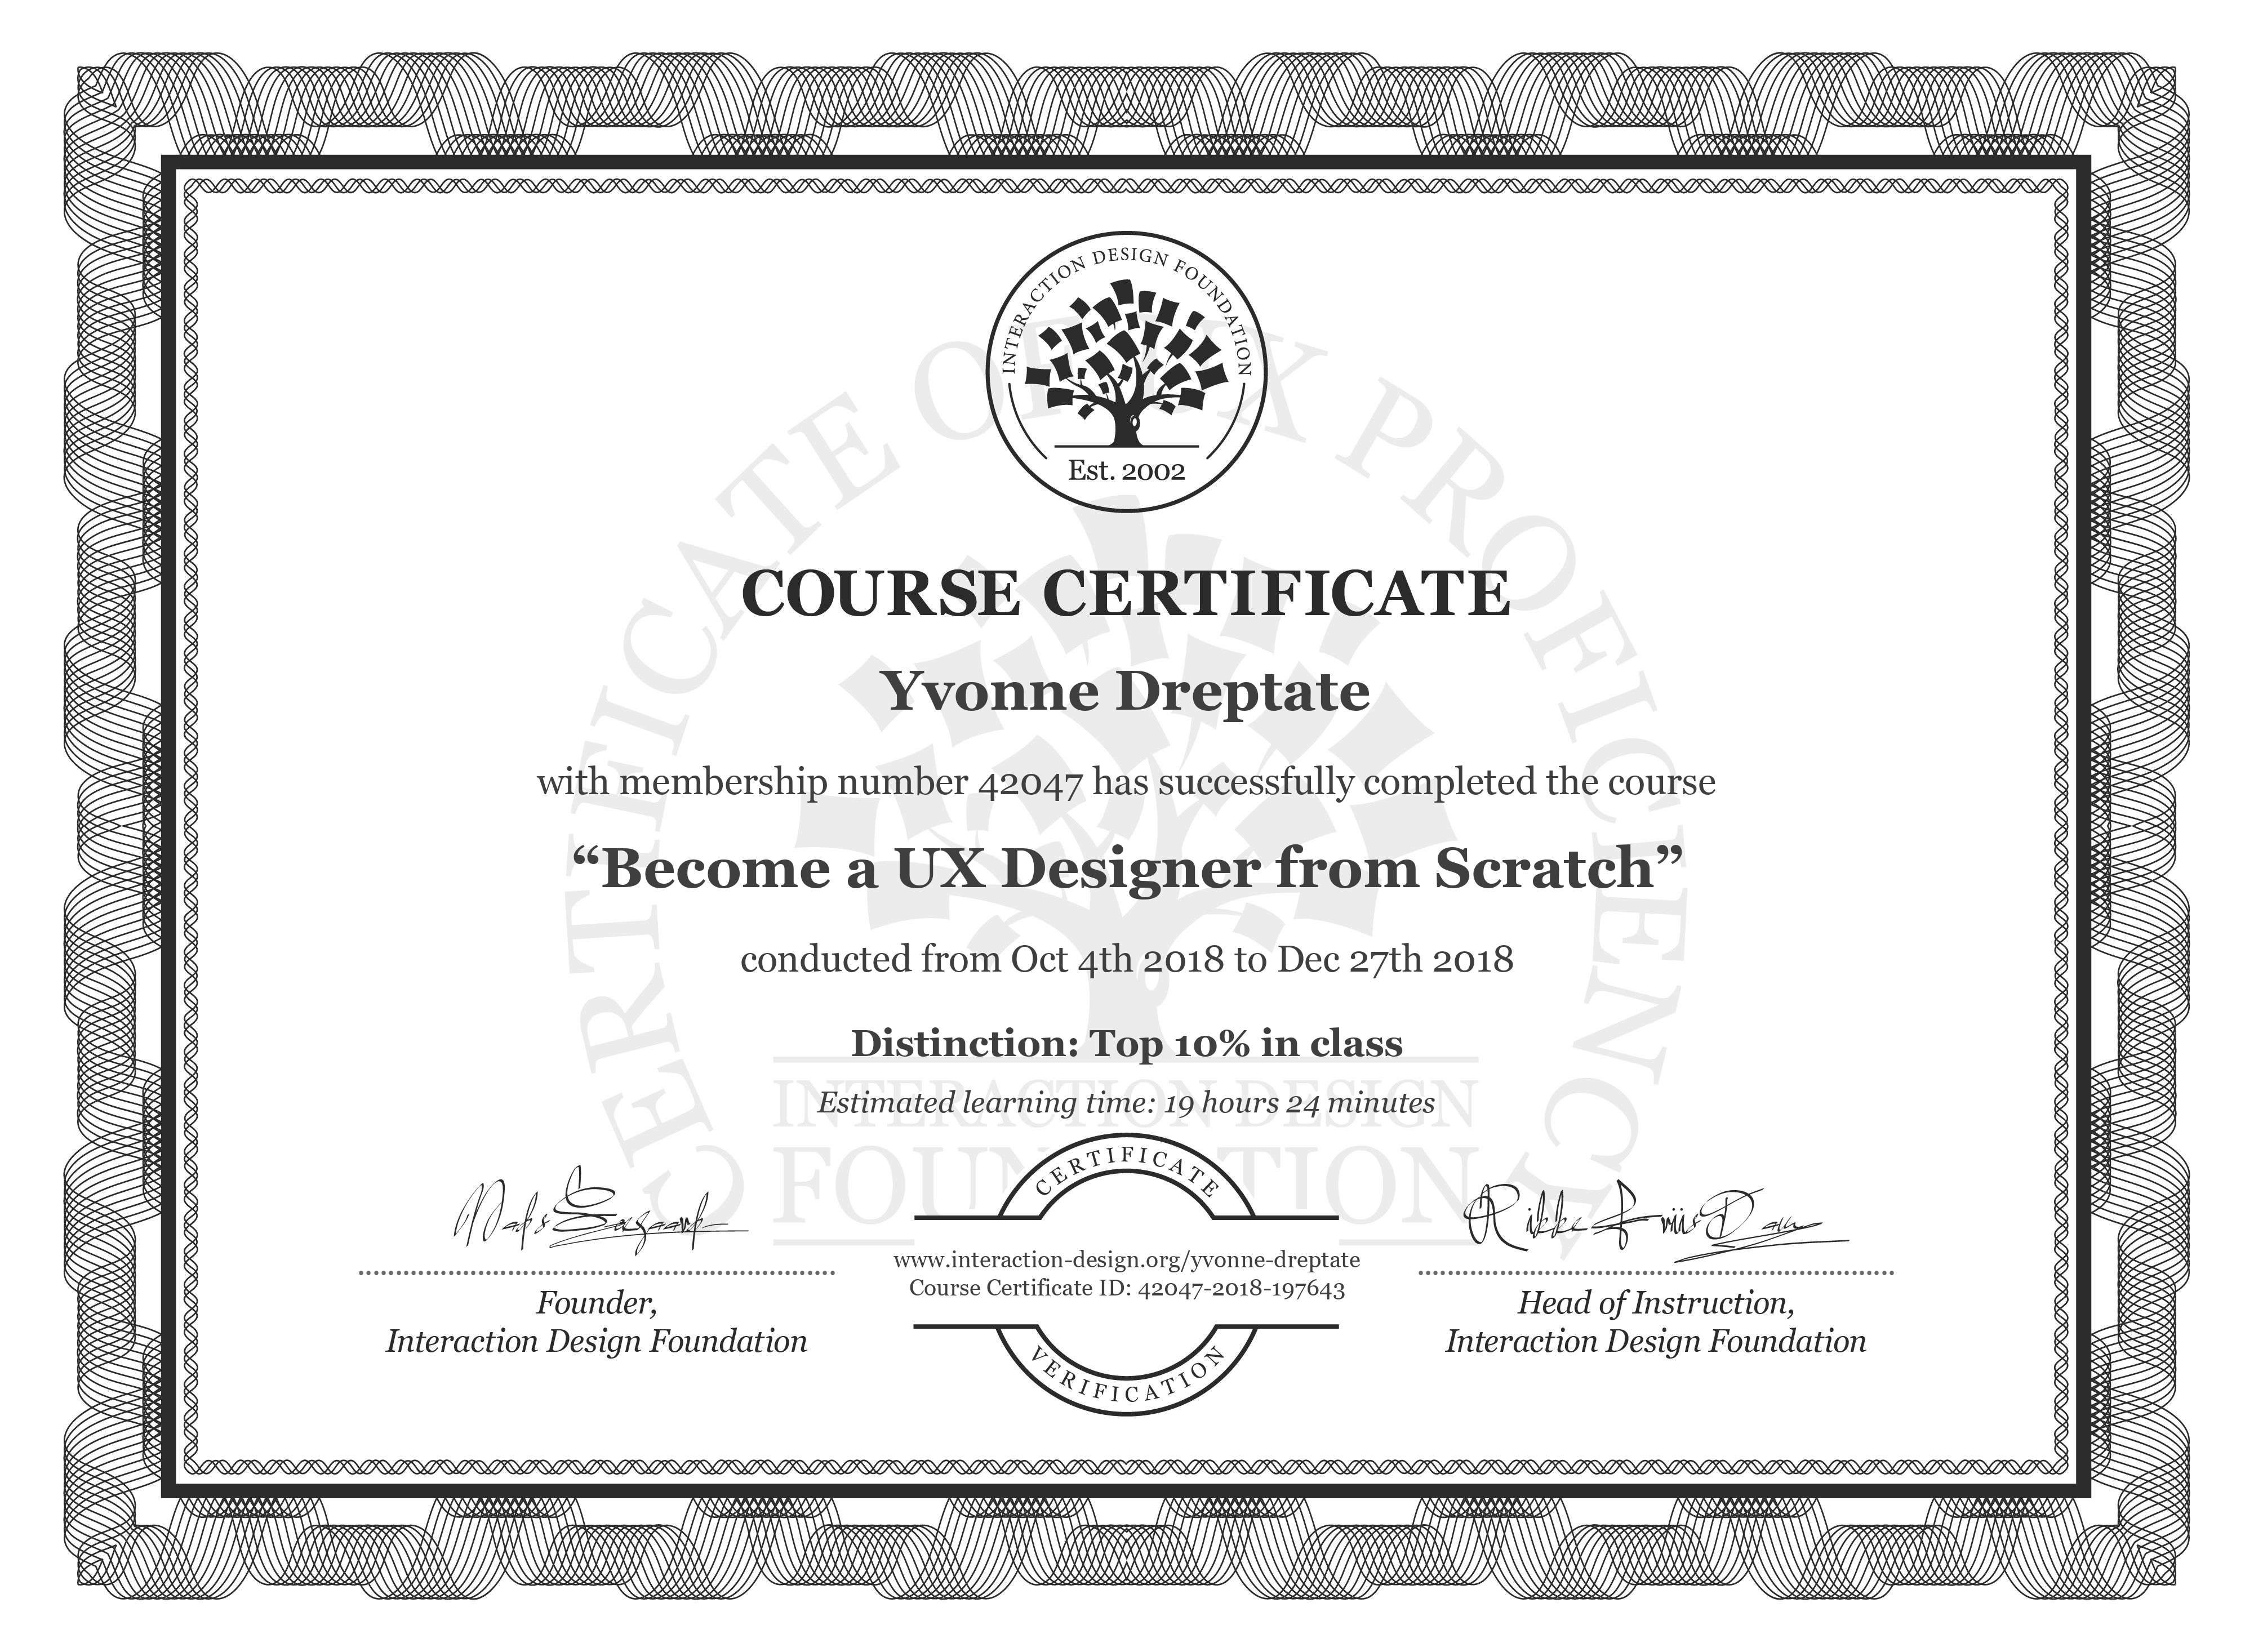 Yvonne Dreptate's Course Certificate: User Experience: The Beginner's Guide